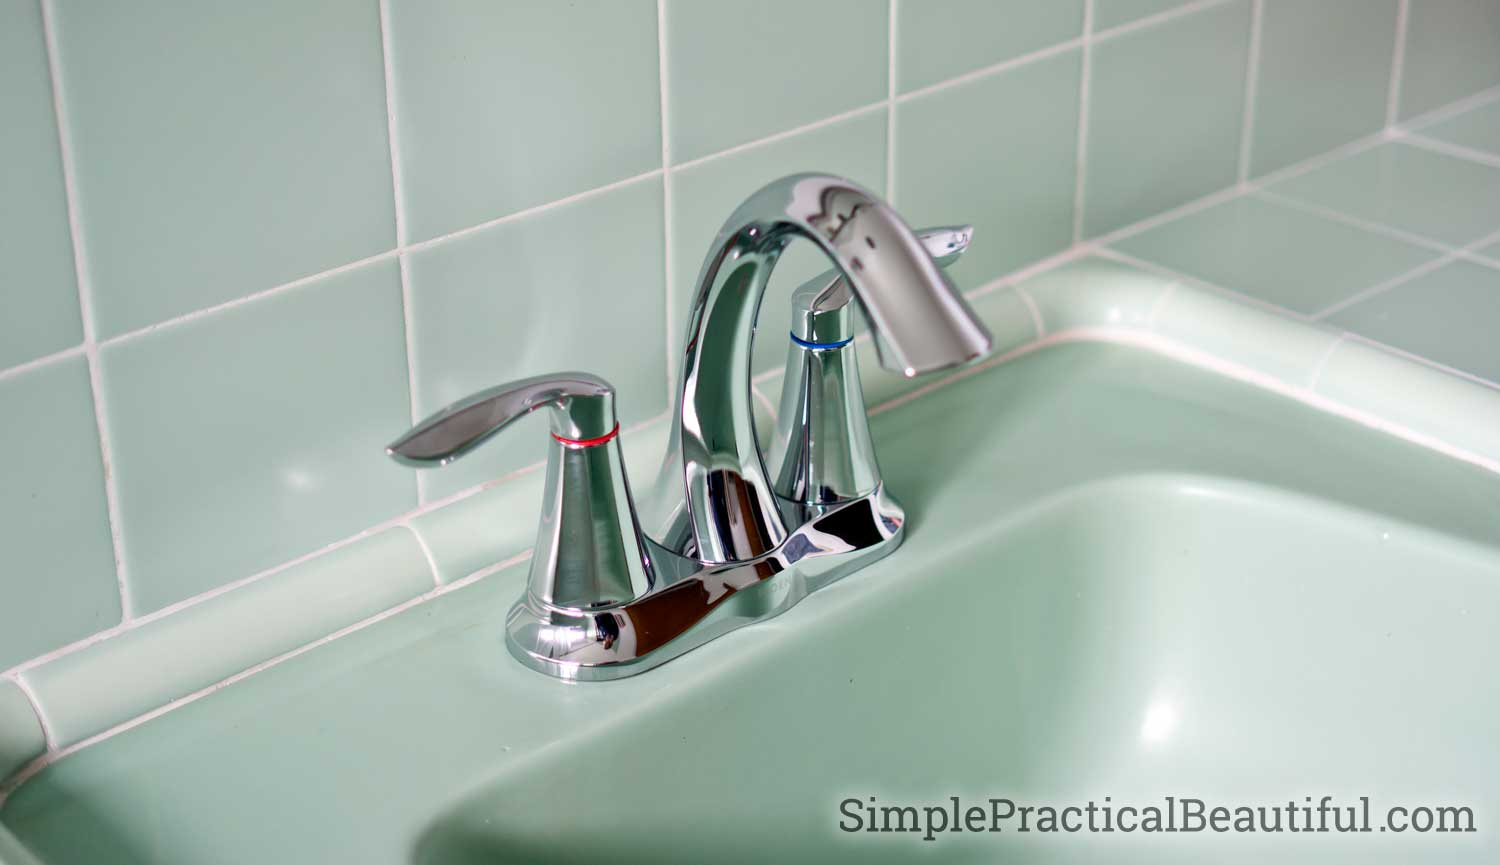 How To Install A Bathroom Faucet Simple Practical Beautiful